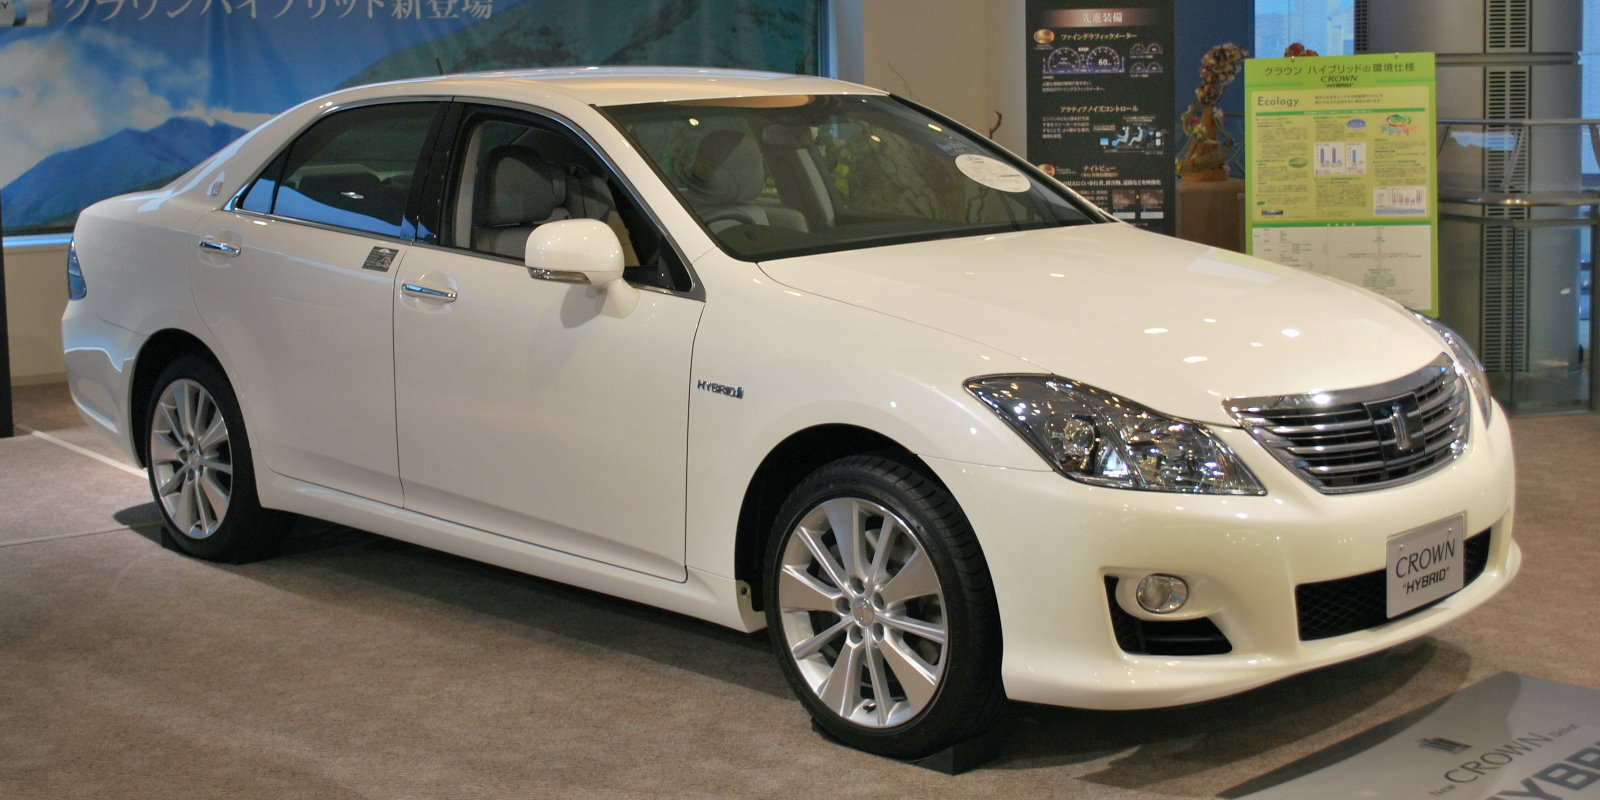 2008_Toyota_Crown-Hybrid_01.jpg